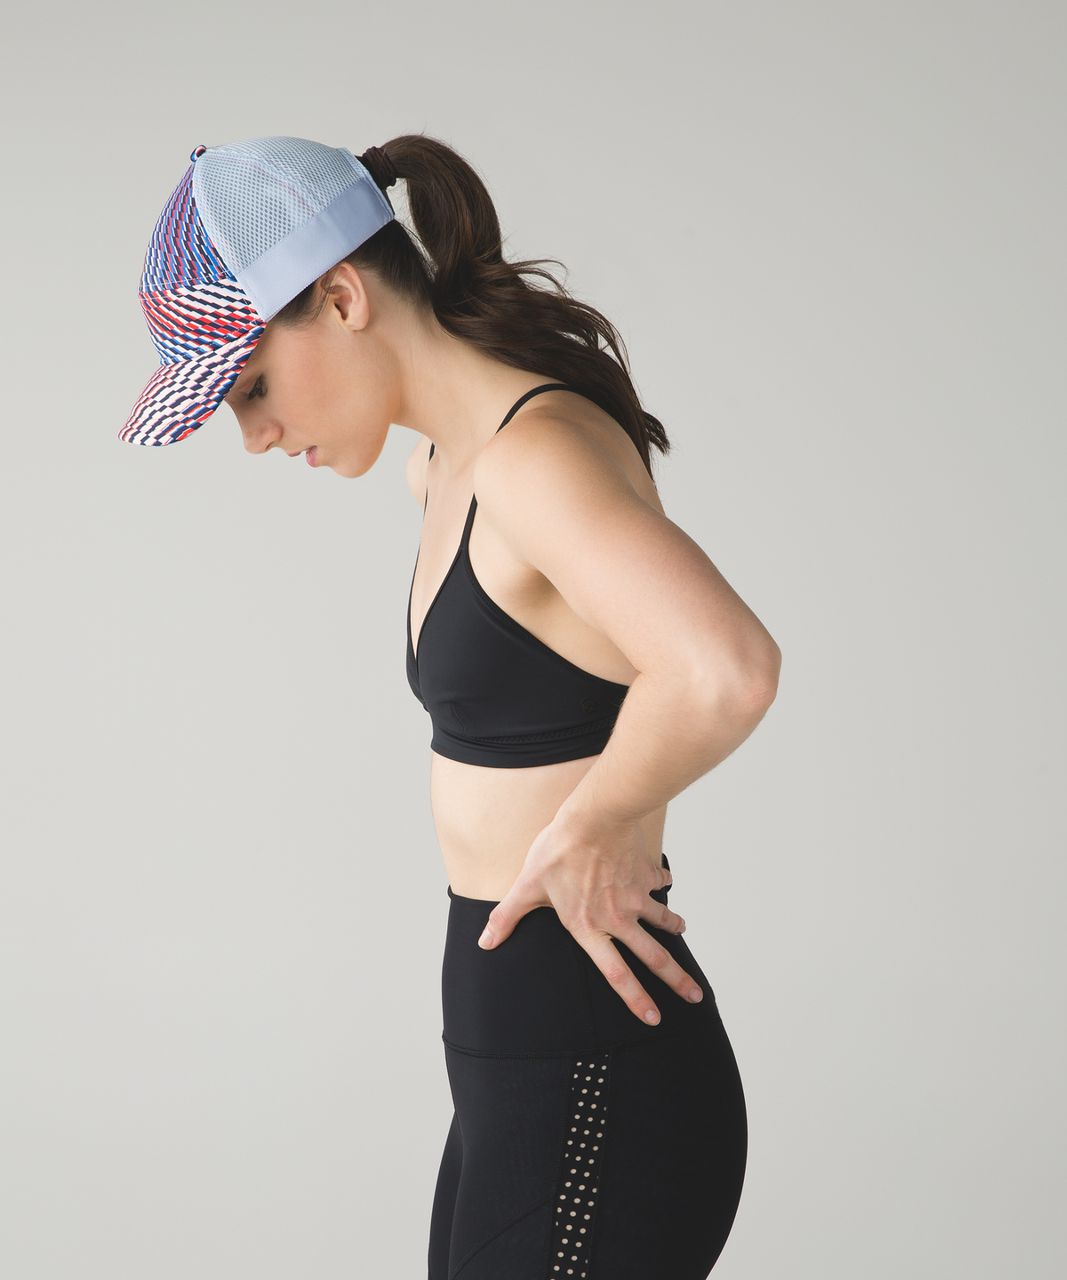 Lululemon Dash and Splash Cap - Chalk / Shifted Horizon Multi